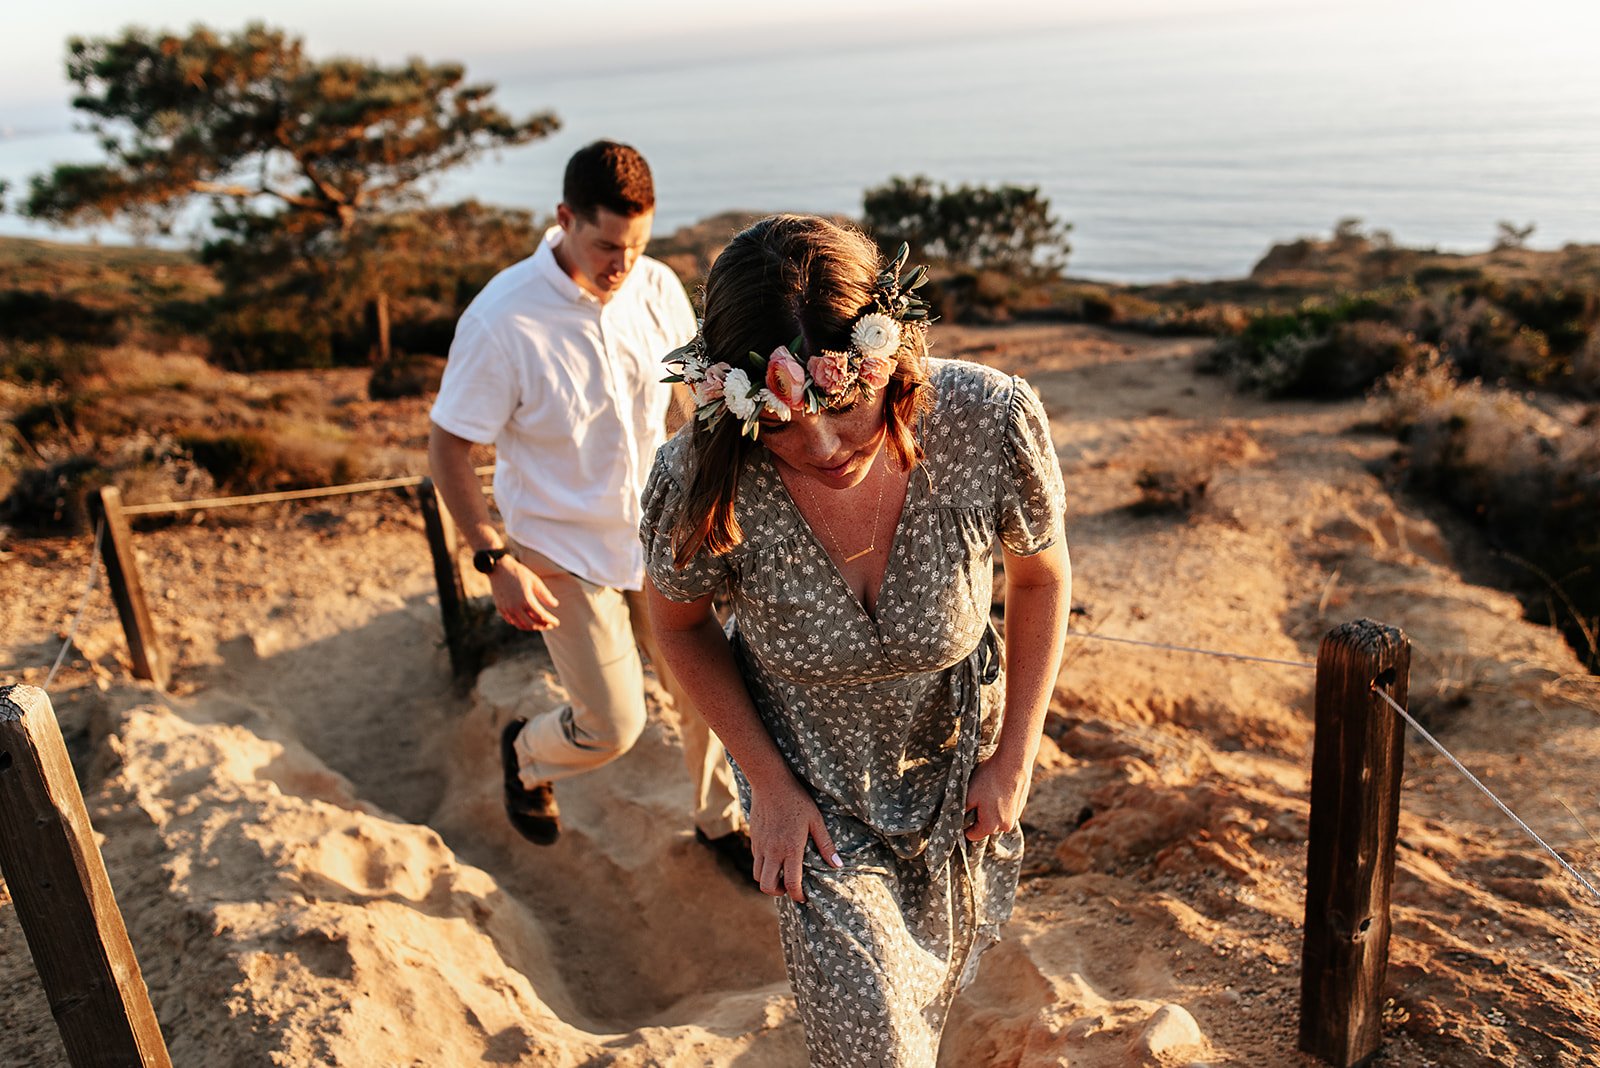 SoCal_Standard_-_San_Diego_Engagement_Photographer_-_Modern_Candid_Destination_Photographer_-_Engagement_Session_at_Torrey_Pines_San_Diego_California_-_Grace_and_Robert-185.jpg